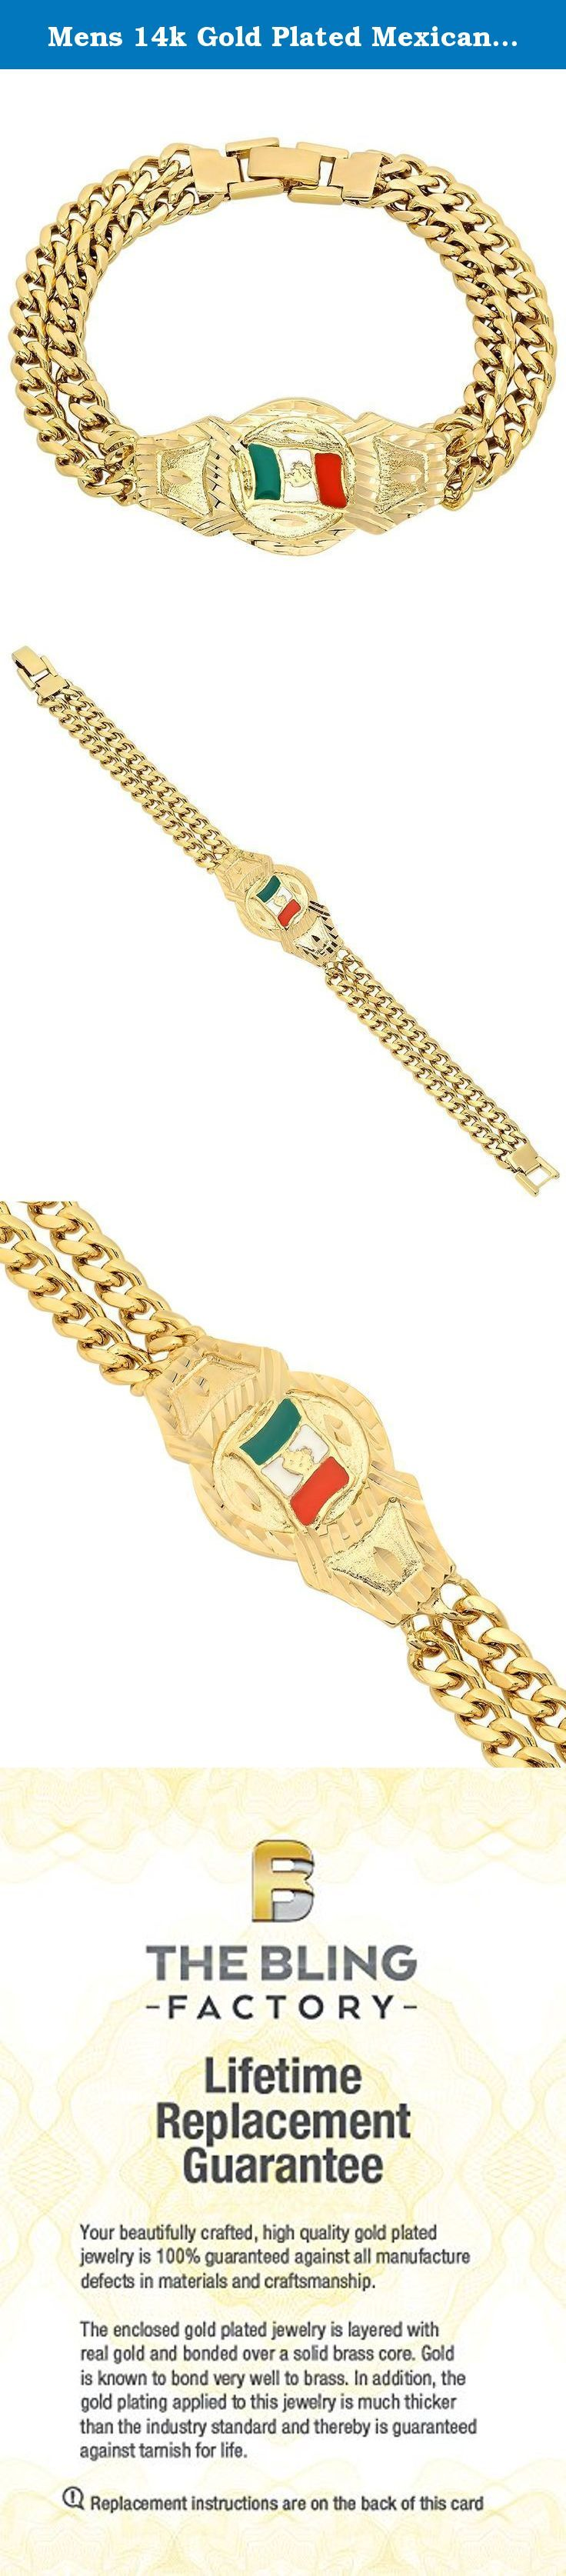 """Mens 14k Gold Plated Mexican Flag Double Cuban Link Curb Bracelet. Show off your Mexican pride with this men's 14k gold plated Mexican flag double Cuban curb link bracelet. Each bracelet features a central """"ID"""" style plate with green, white and red flag complete with stylized symbol and diamond-cut style accents, two rows of 14k gold plated Cuban curb link chains all tied together with a lustrously polished locking box clasp. Made in the USA, Full Replacement Warranty for Life."""